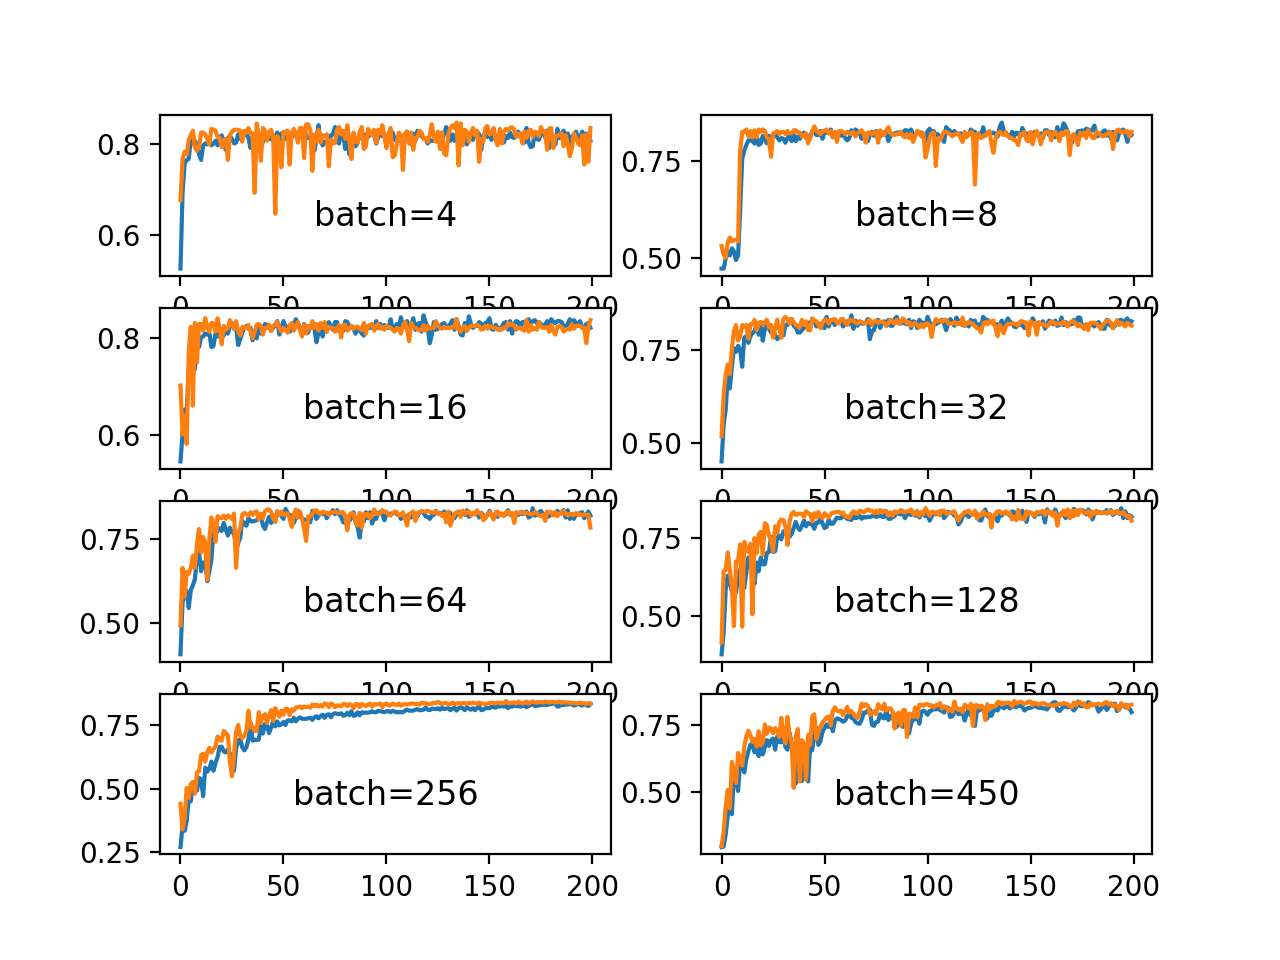 Line Plots of Classification Accuracy on Train and Test Datasets With Different Batch Sizes